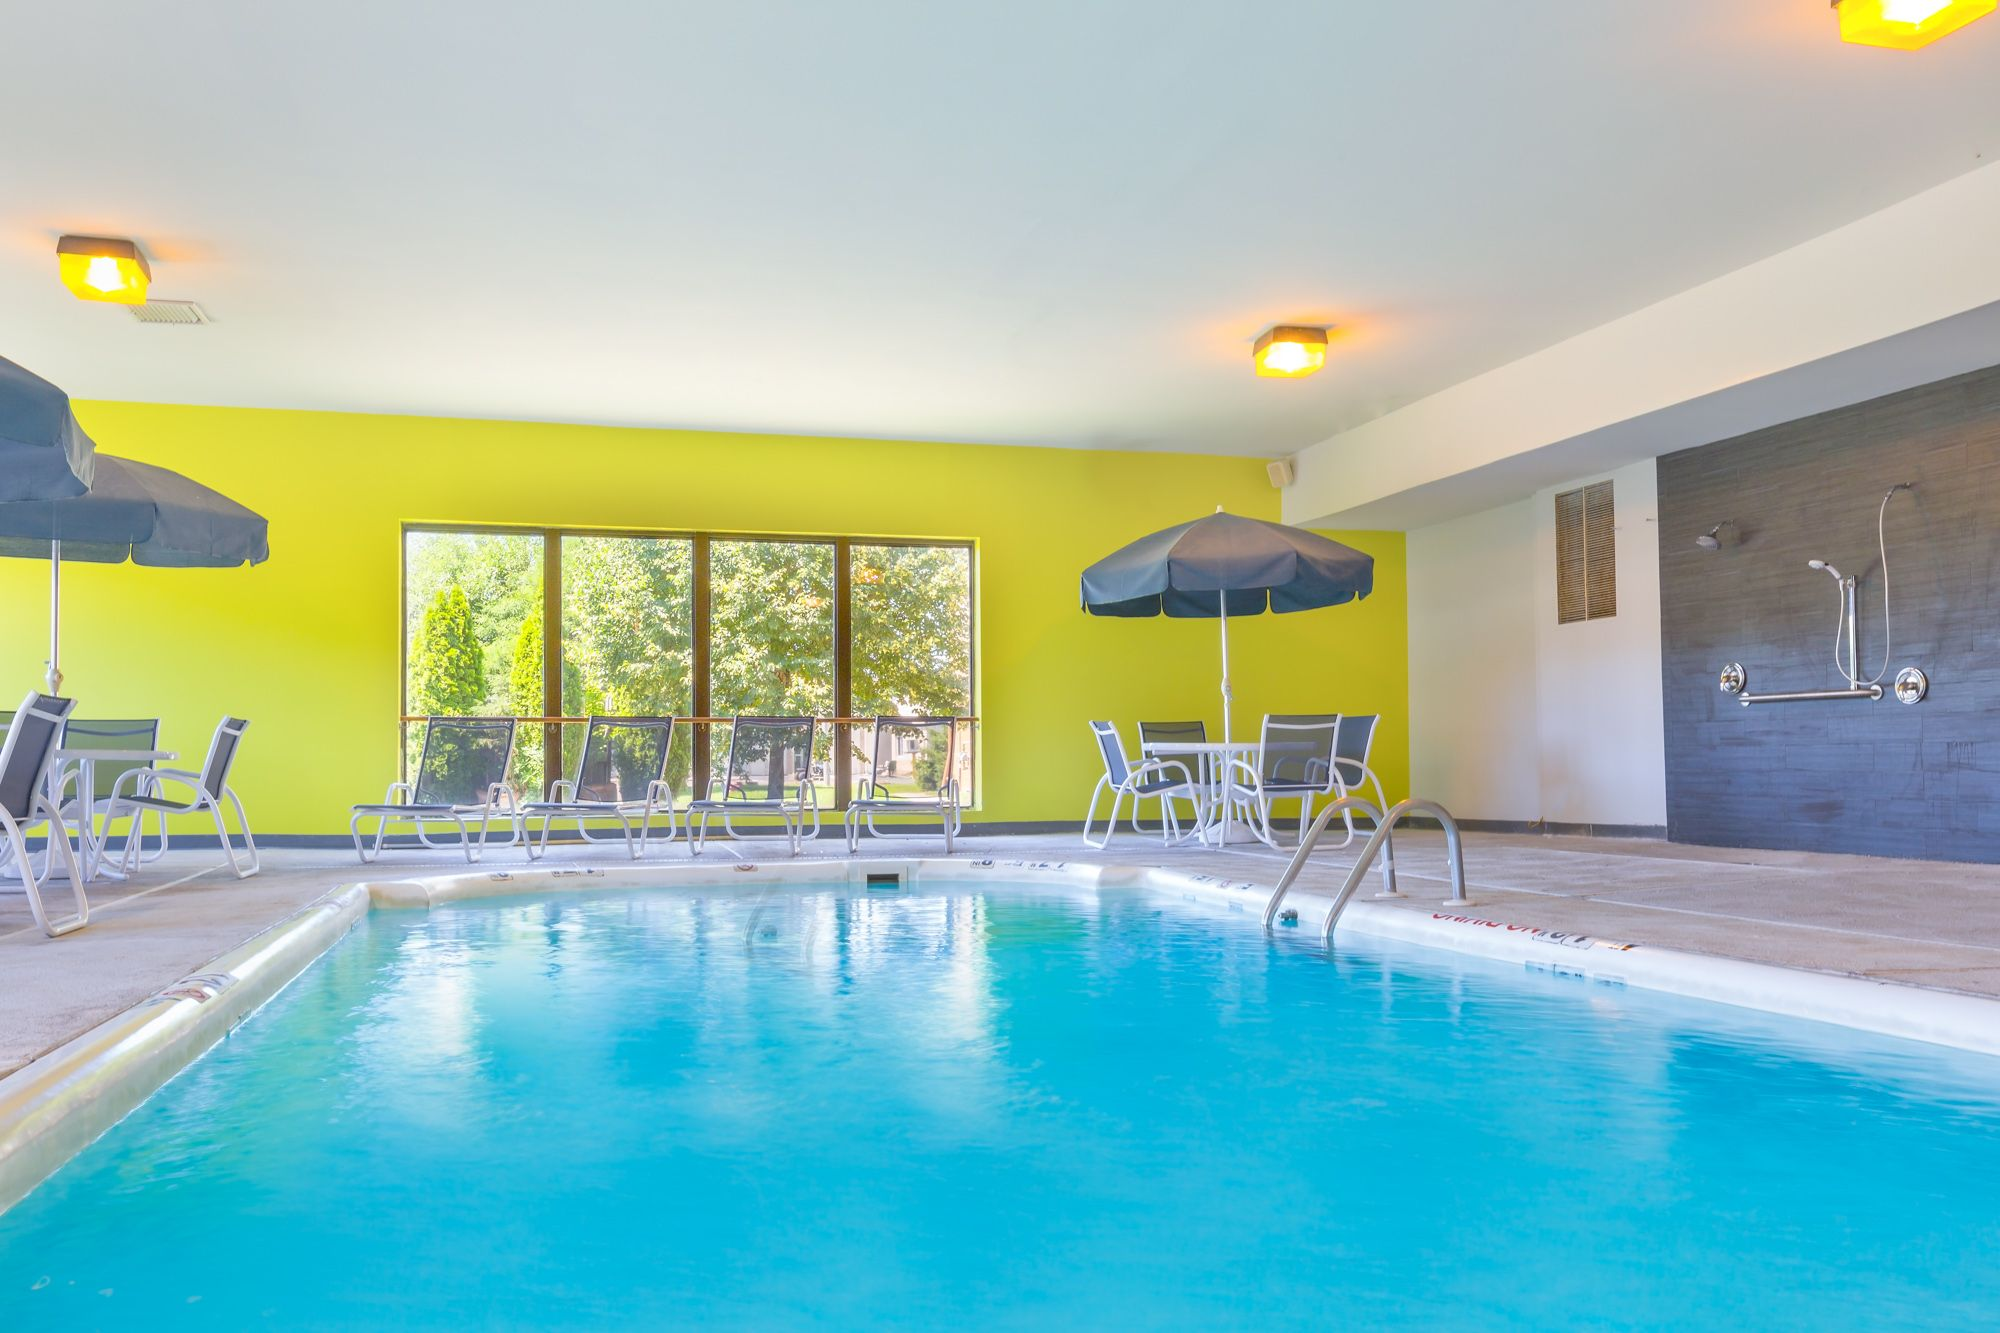 It S Always The Perfect Temperature In Our Pool At The Holiday Inn Express Suites Mt Holly Nj Tnpk Exit 5 Hotel Holiday Inn Six Flags Great Adventure